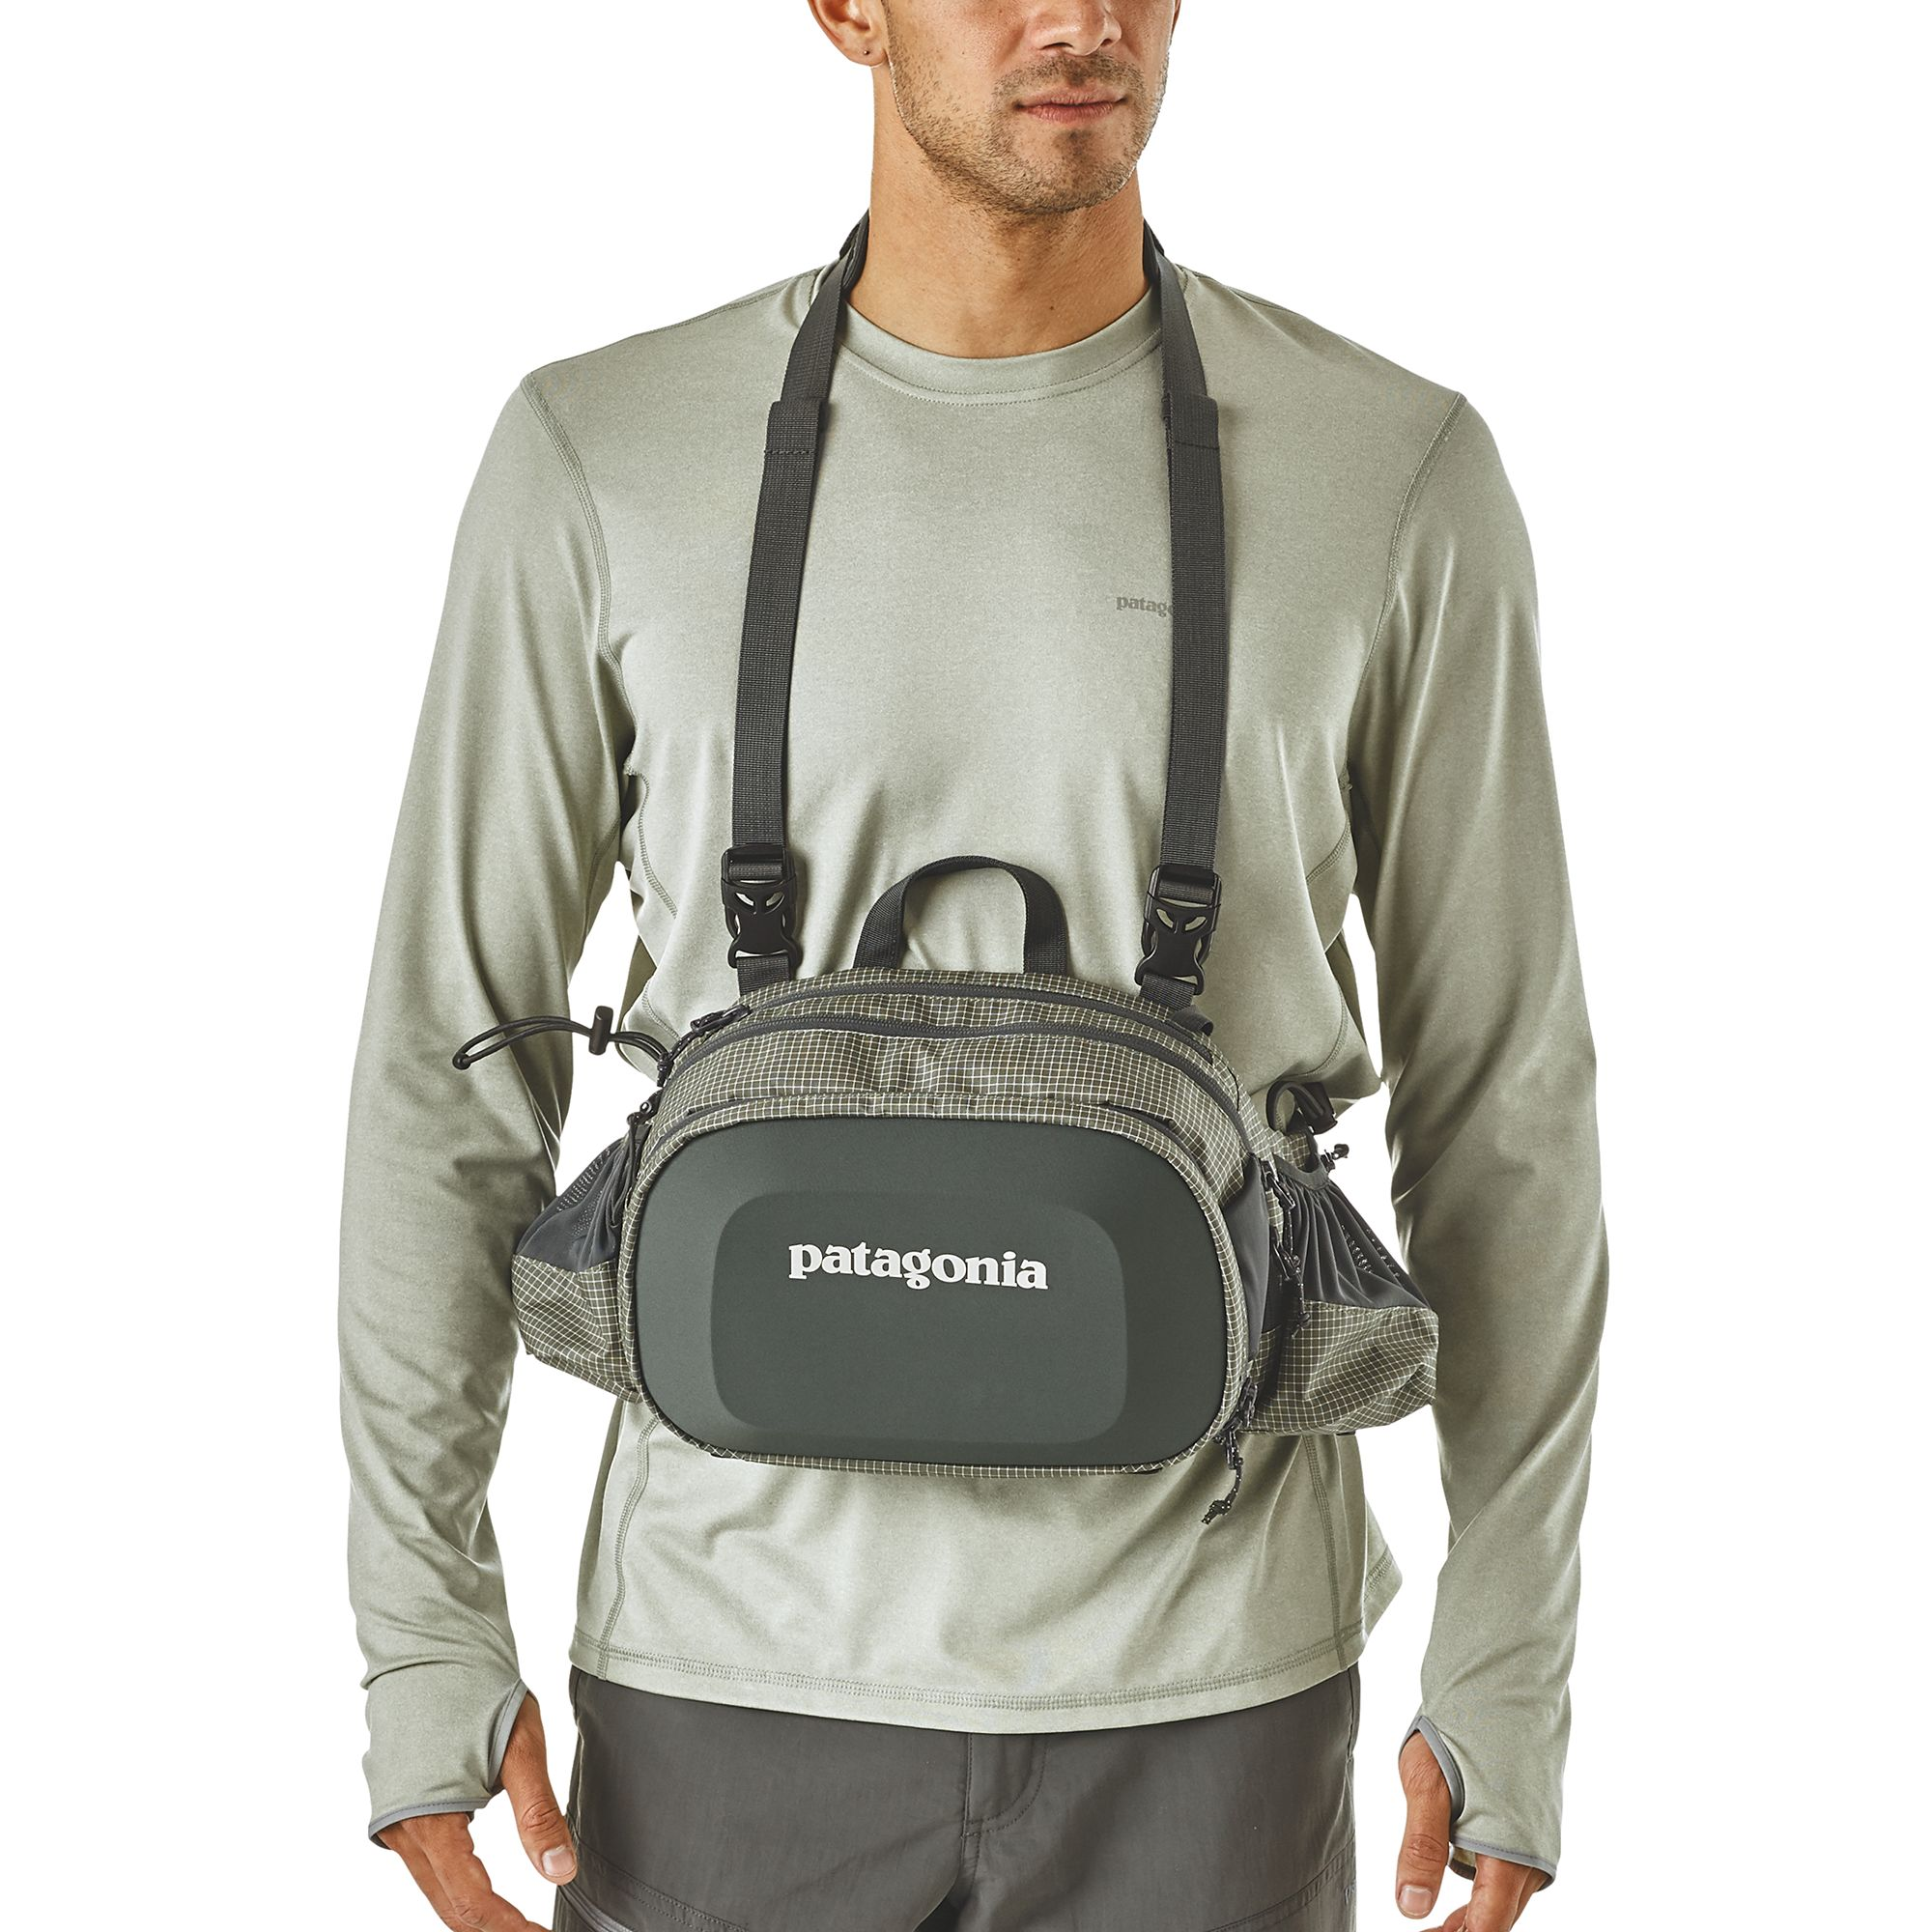 Stealth Hip Pack 10L Patagonia - Ready to fish